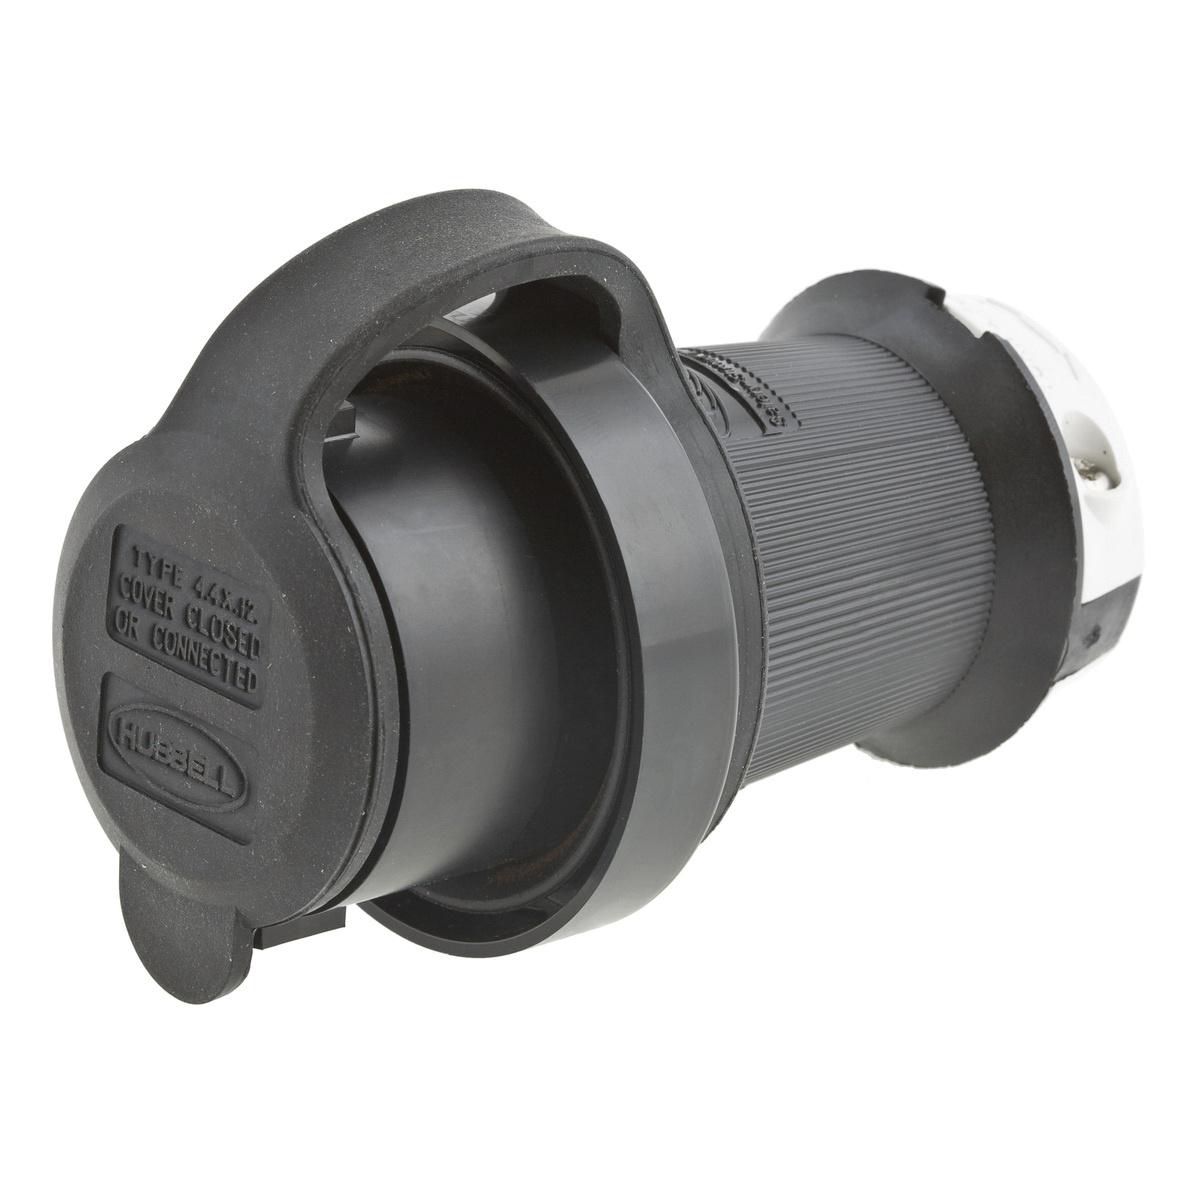 Hubbell-Wiring HBL2611SW 3-Wire 2-Pole Watertight Plug 125 ... on